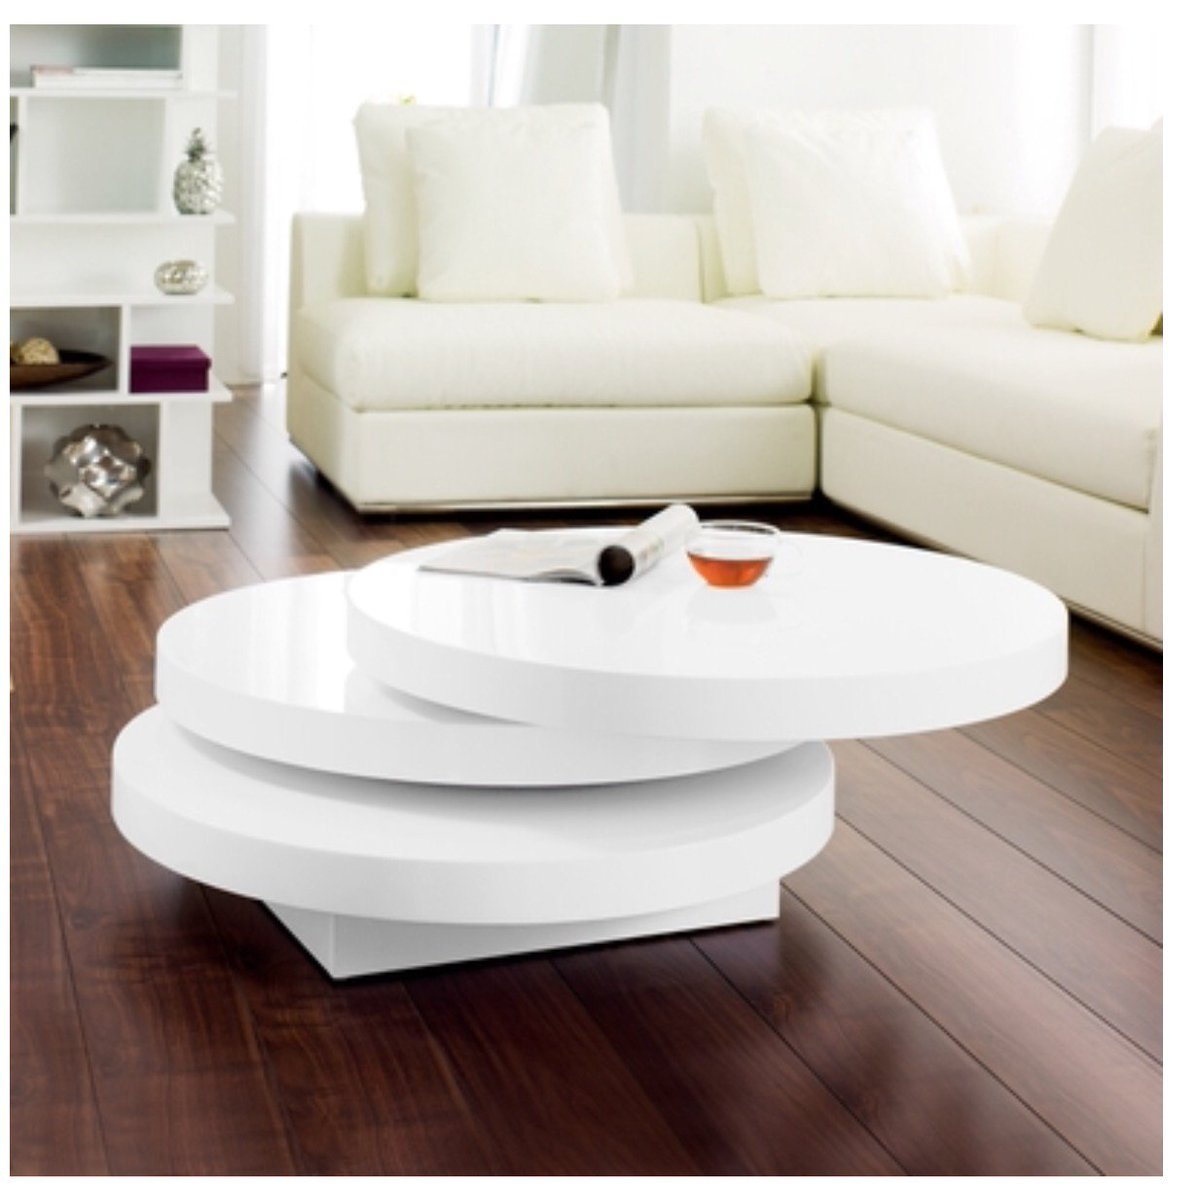 Itsadeal itsadeal123 twitter this stylish swivel rotating coffee table in glossy white is bound to upgrade any living area you can grab yours from 1 httpebay2hm3bhq geotapseo Image collections